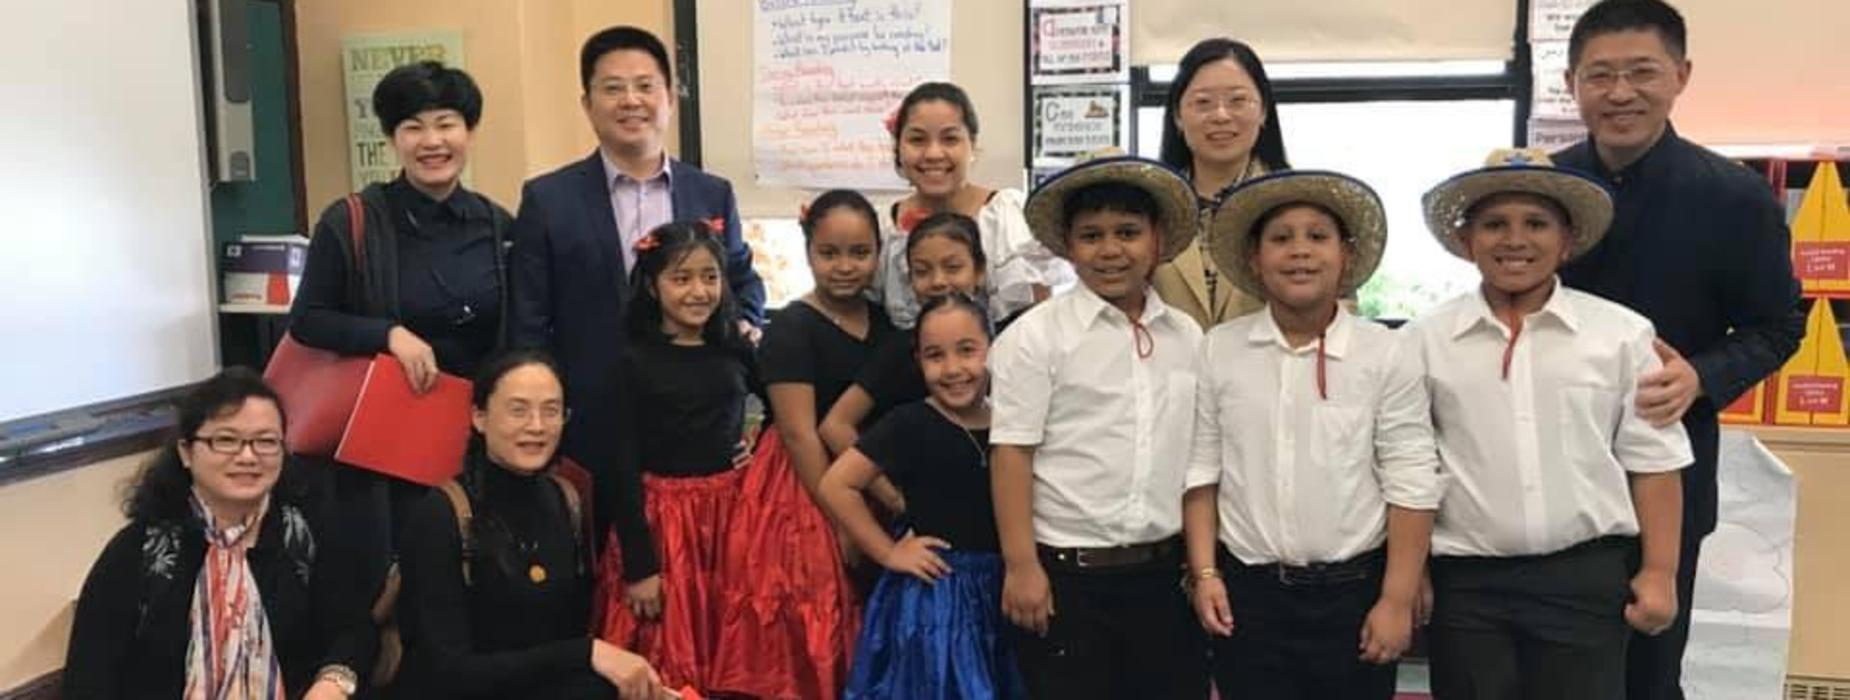 Visitors from The Zheijang Provincial Department of Education congratulate a 3rd grade class after a dance performance.